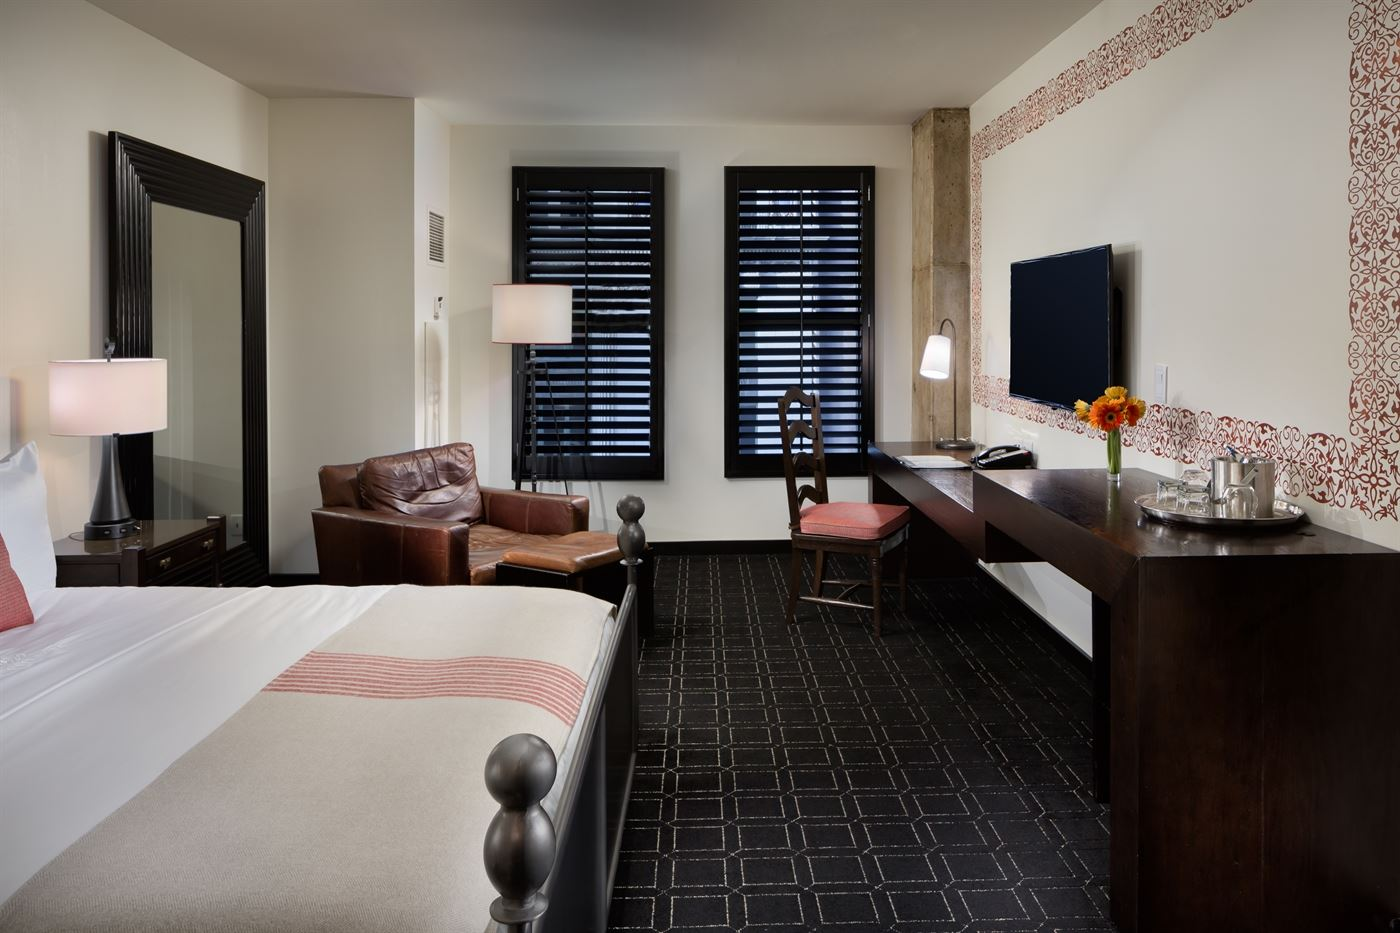 Hotel Lodging for corporate business travel in san antonio king bed guest room